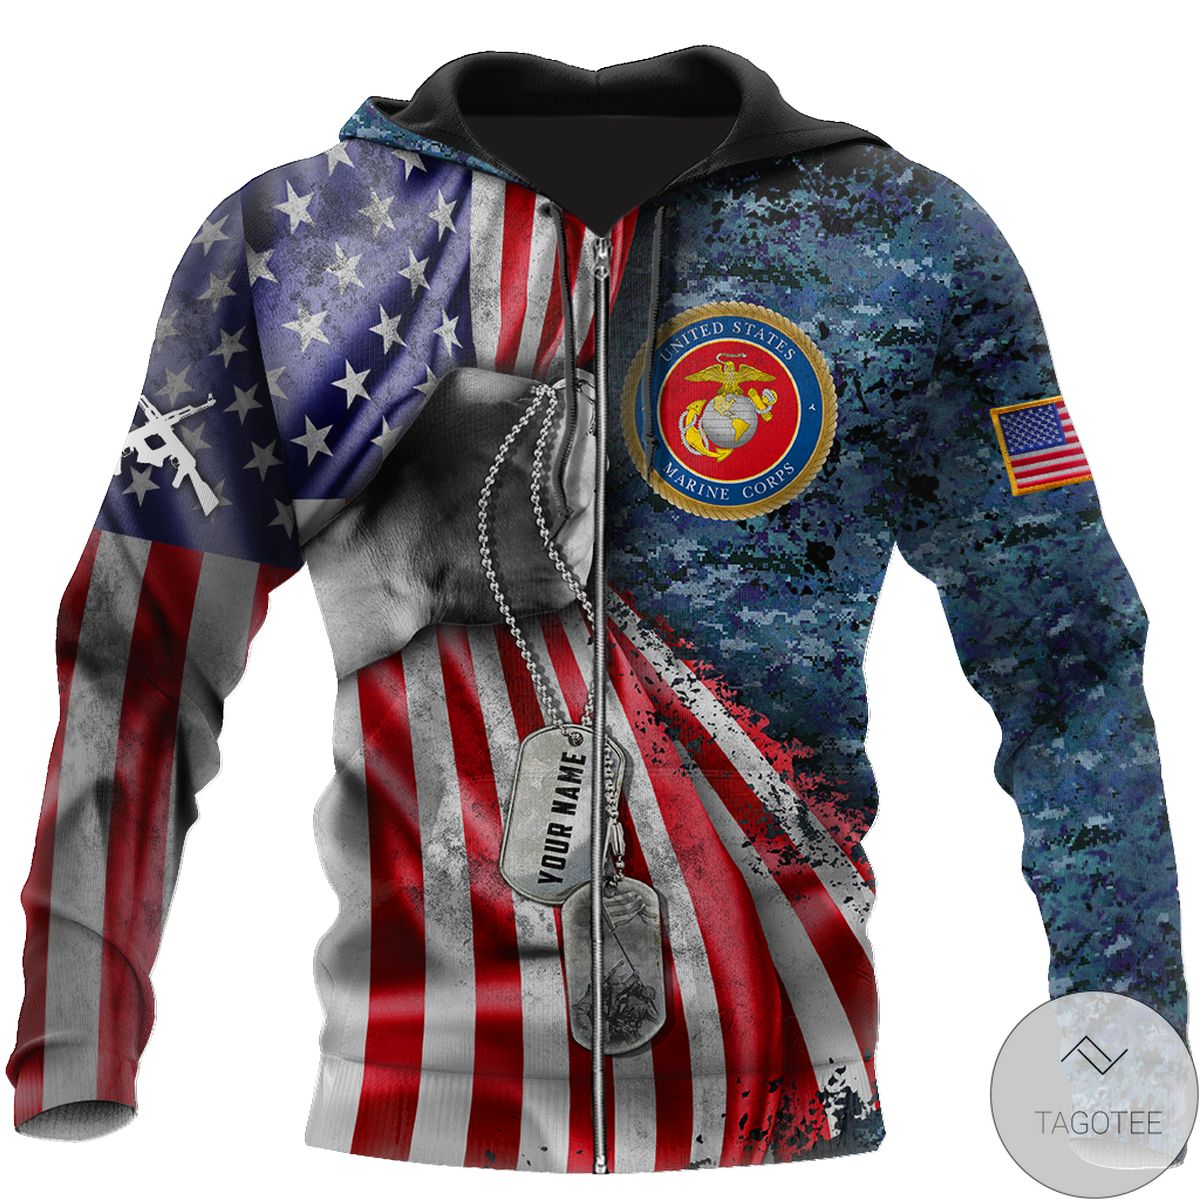 Esty Personalized Us Marine Corps Tag 3D All Over Print Hoodie